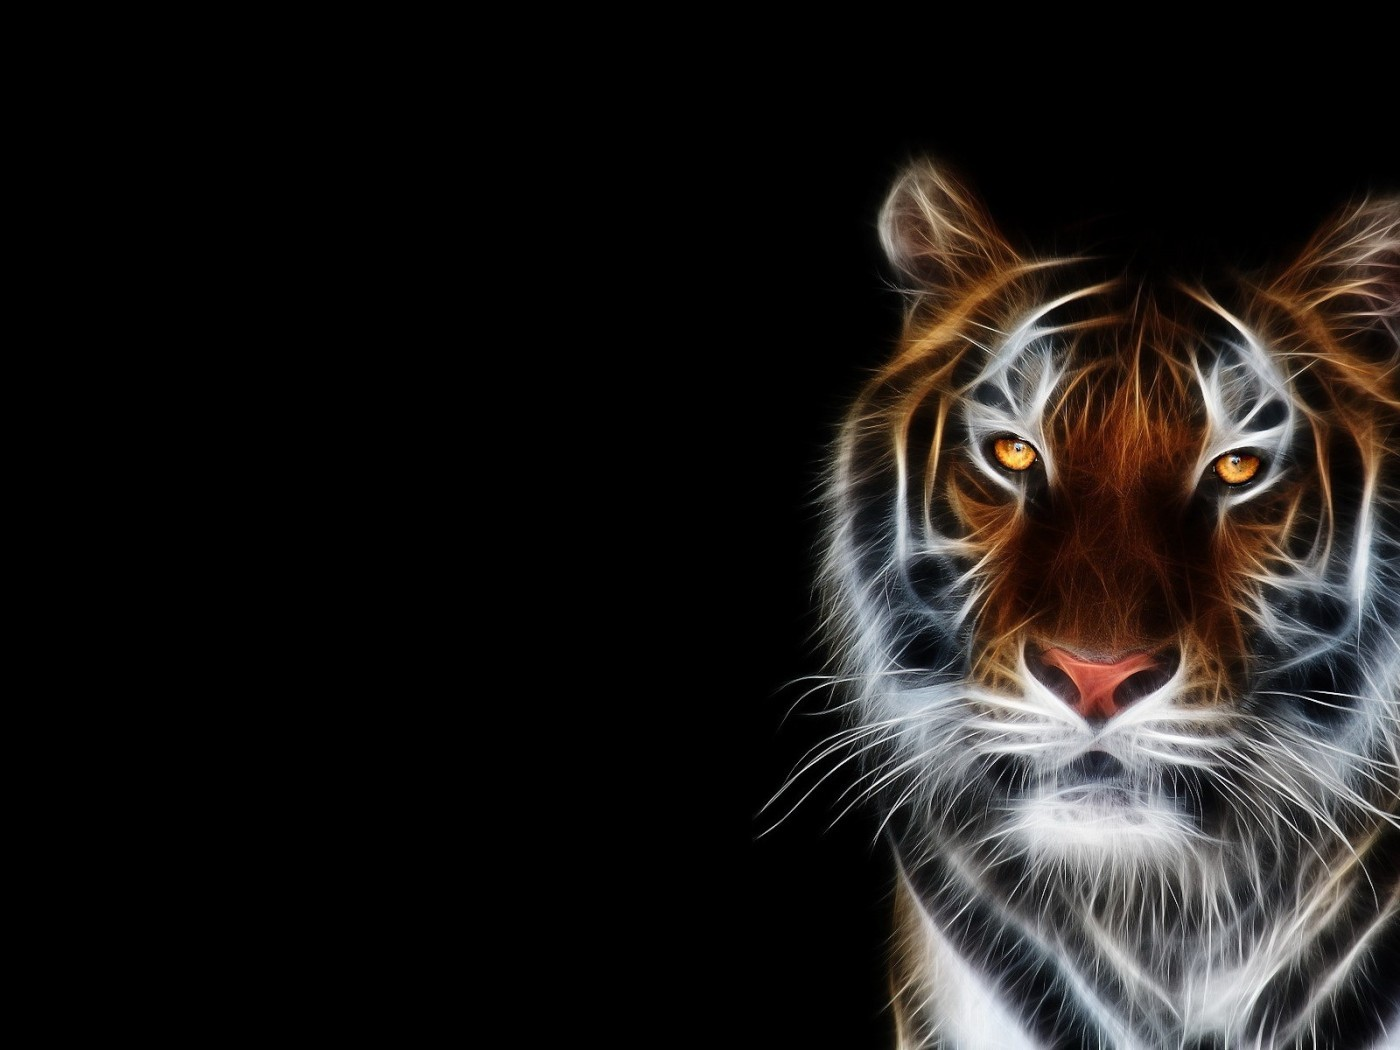 20147 download wallpaper Animals, Tigers screensavers and pictures for free